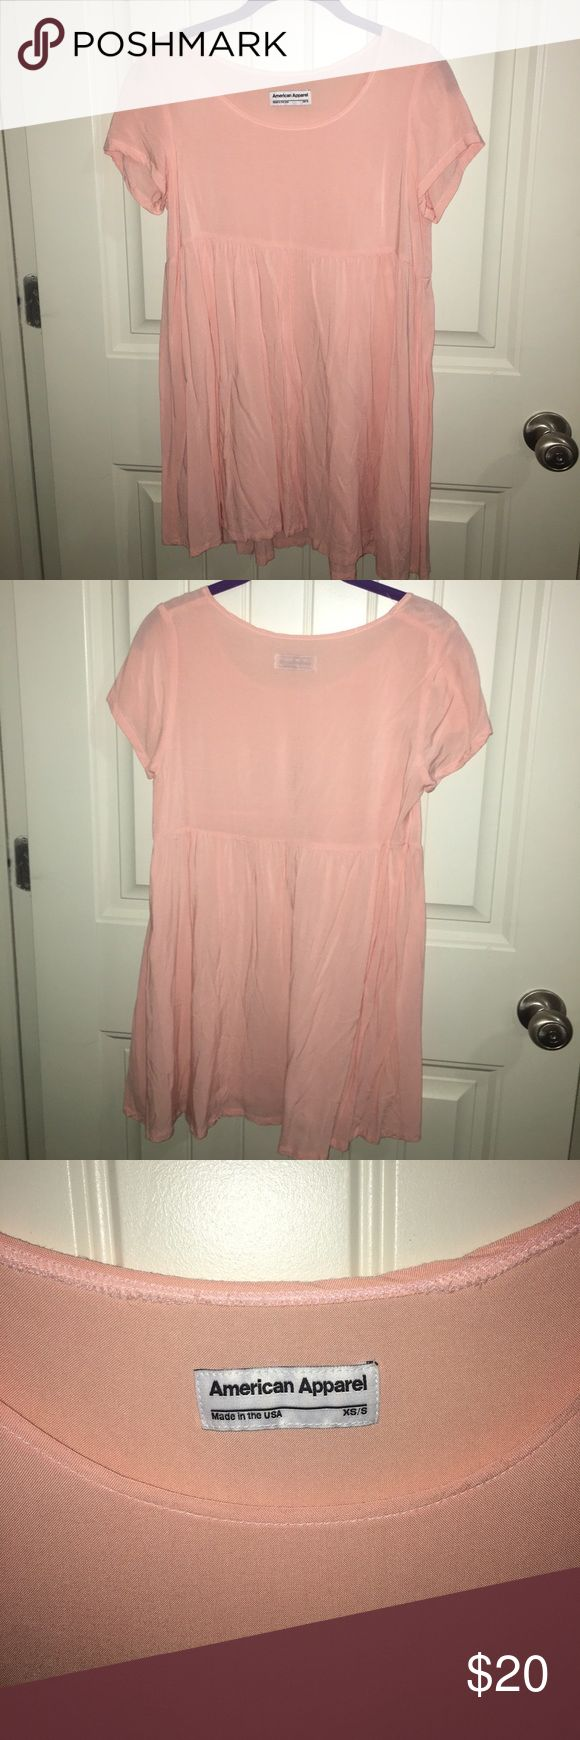 American apparel tshirt dress Light pink American apparel tshirt dress size xs/s barley worn American Apparel Dresses Mini